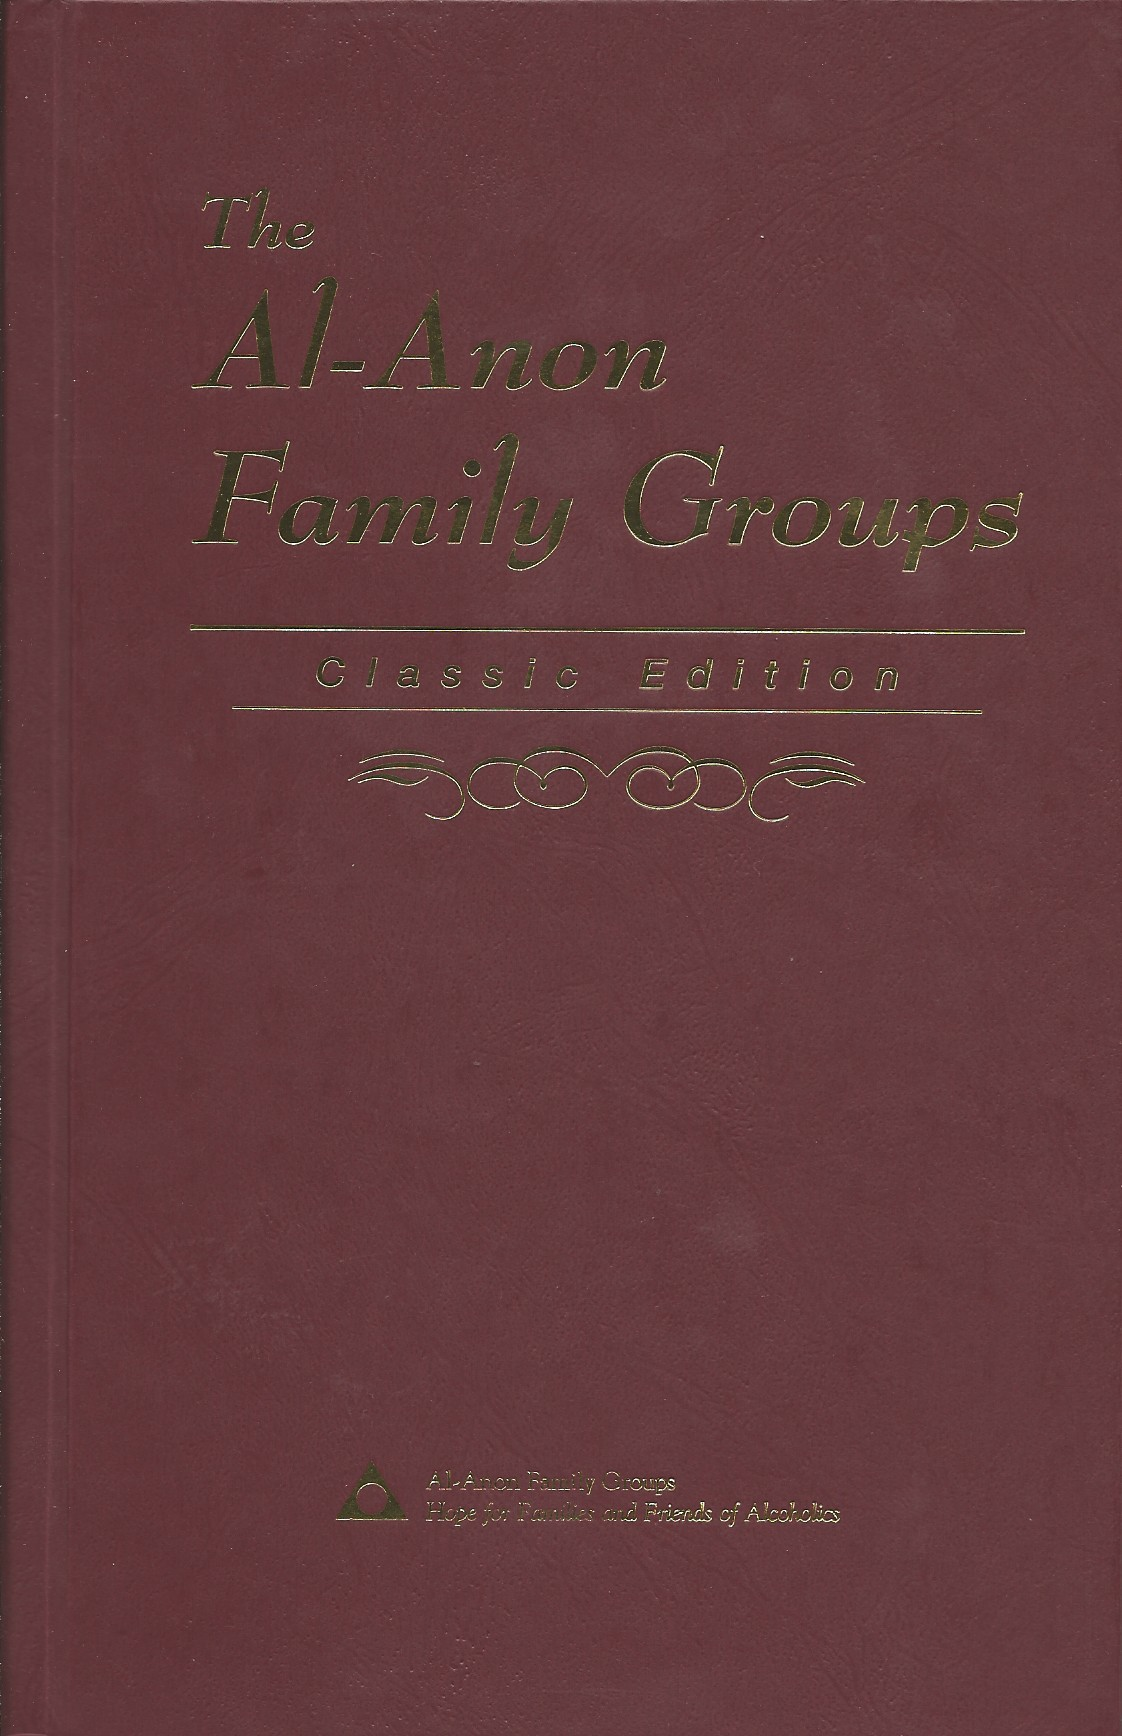 Al Anon Family Groups